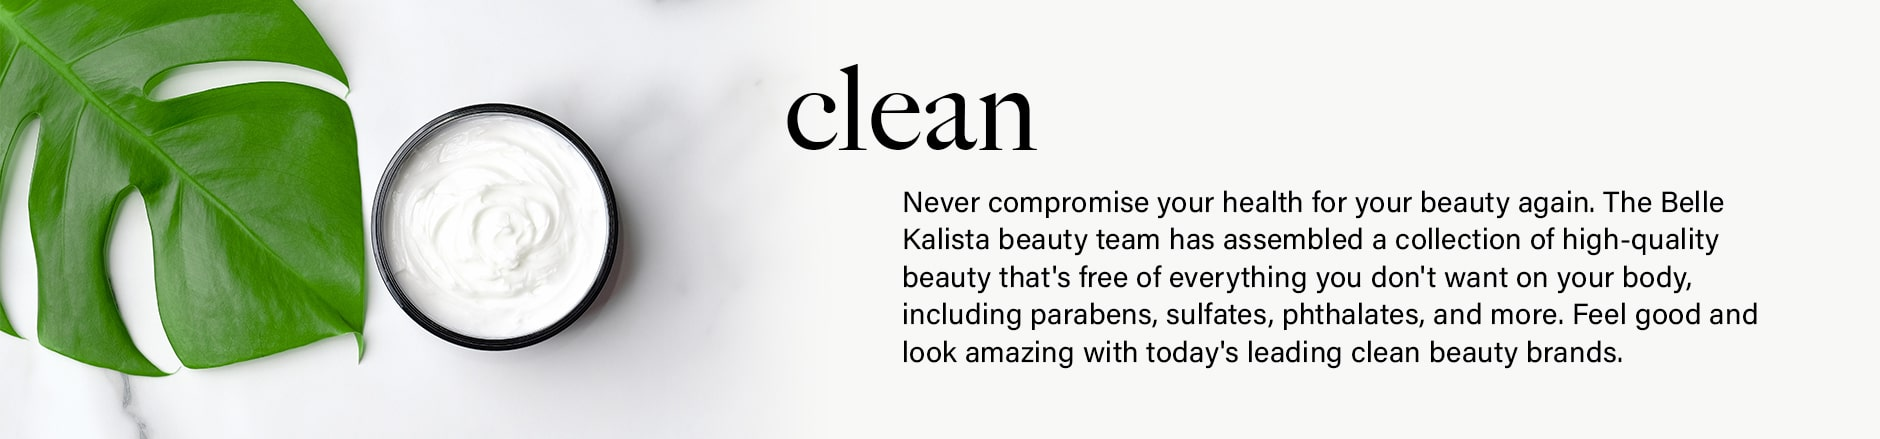 clean-beauty-collection-banner-image (min)